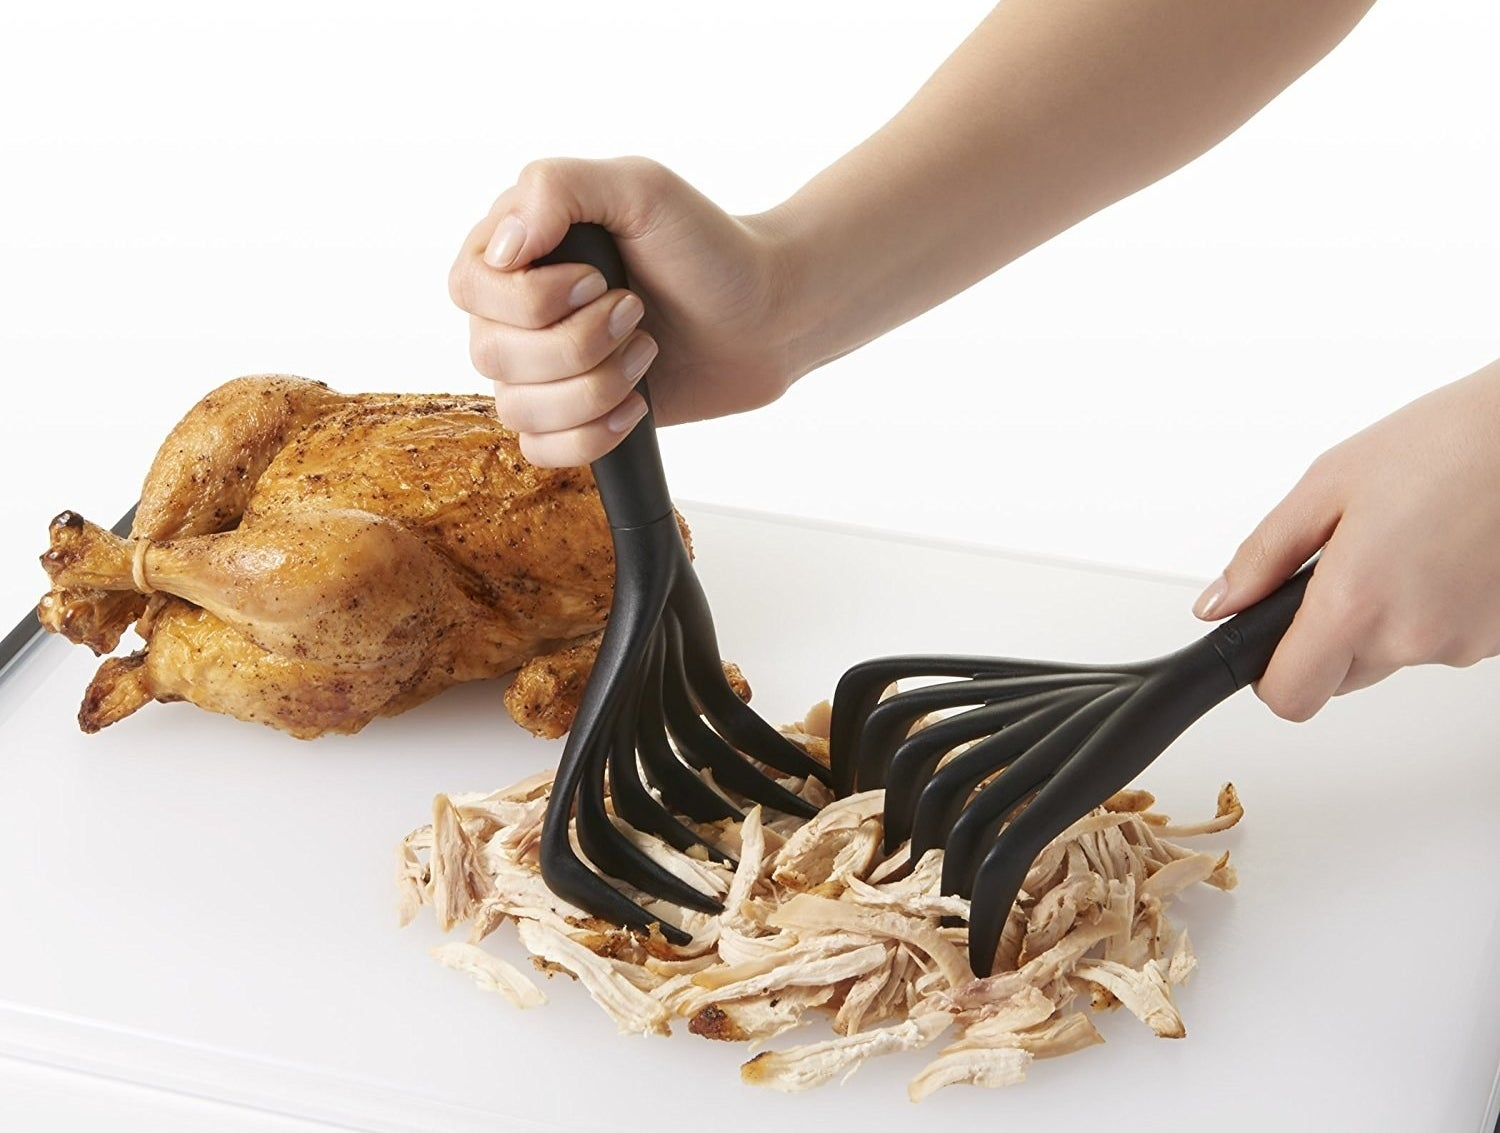 Model using the claws to shred some rotisserie chicken